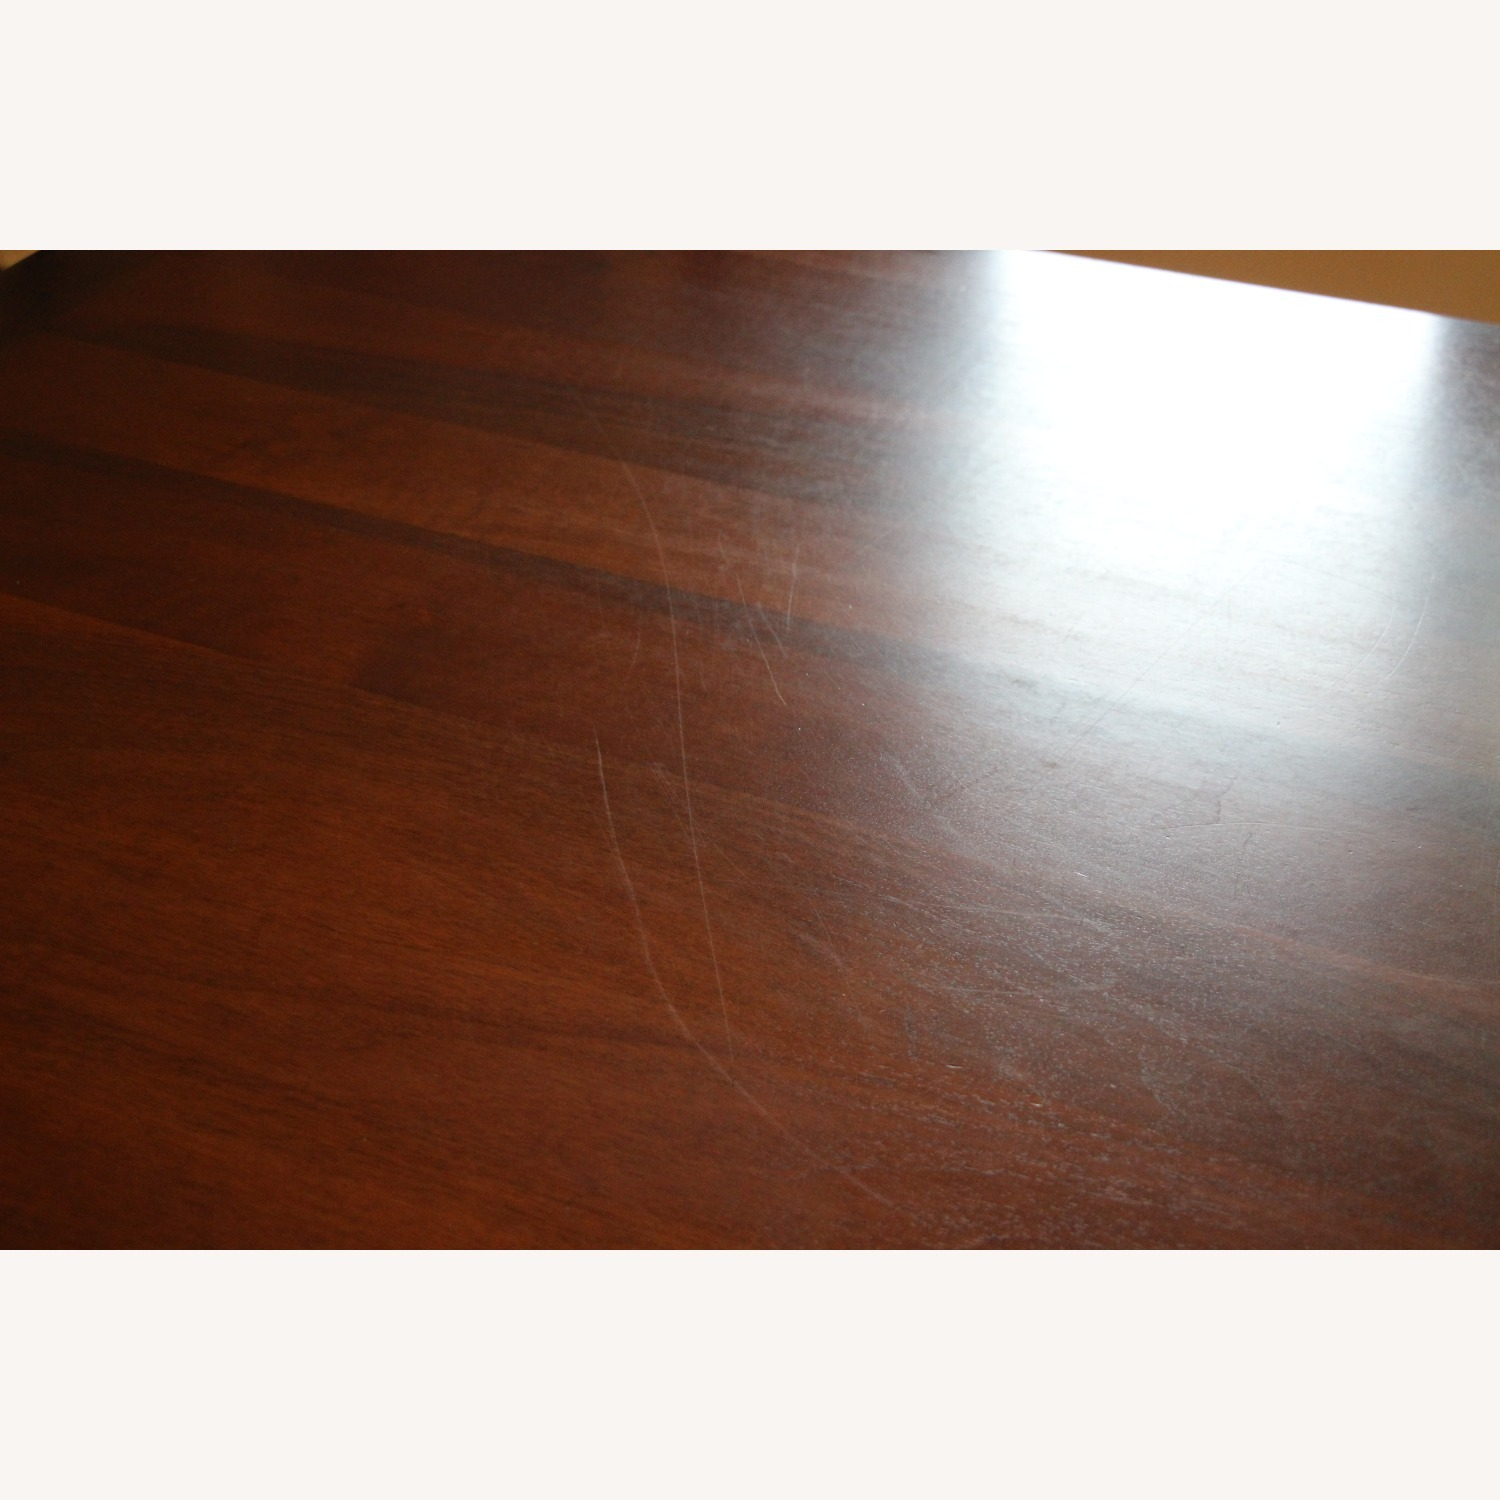 Arhaus Maple Dining Table and Chairs - image-14